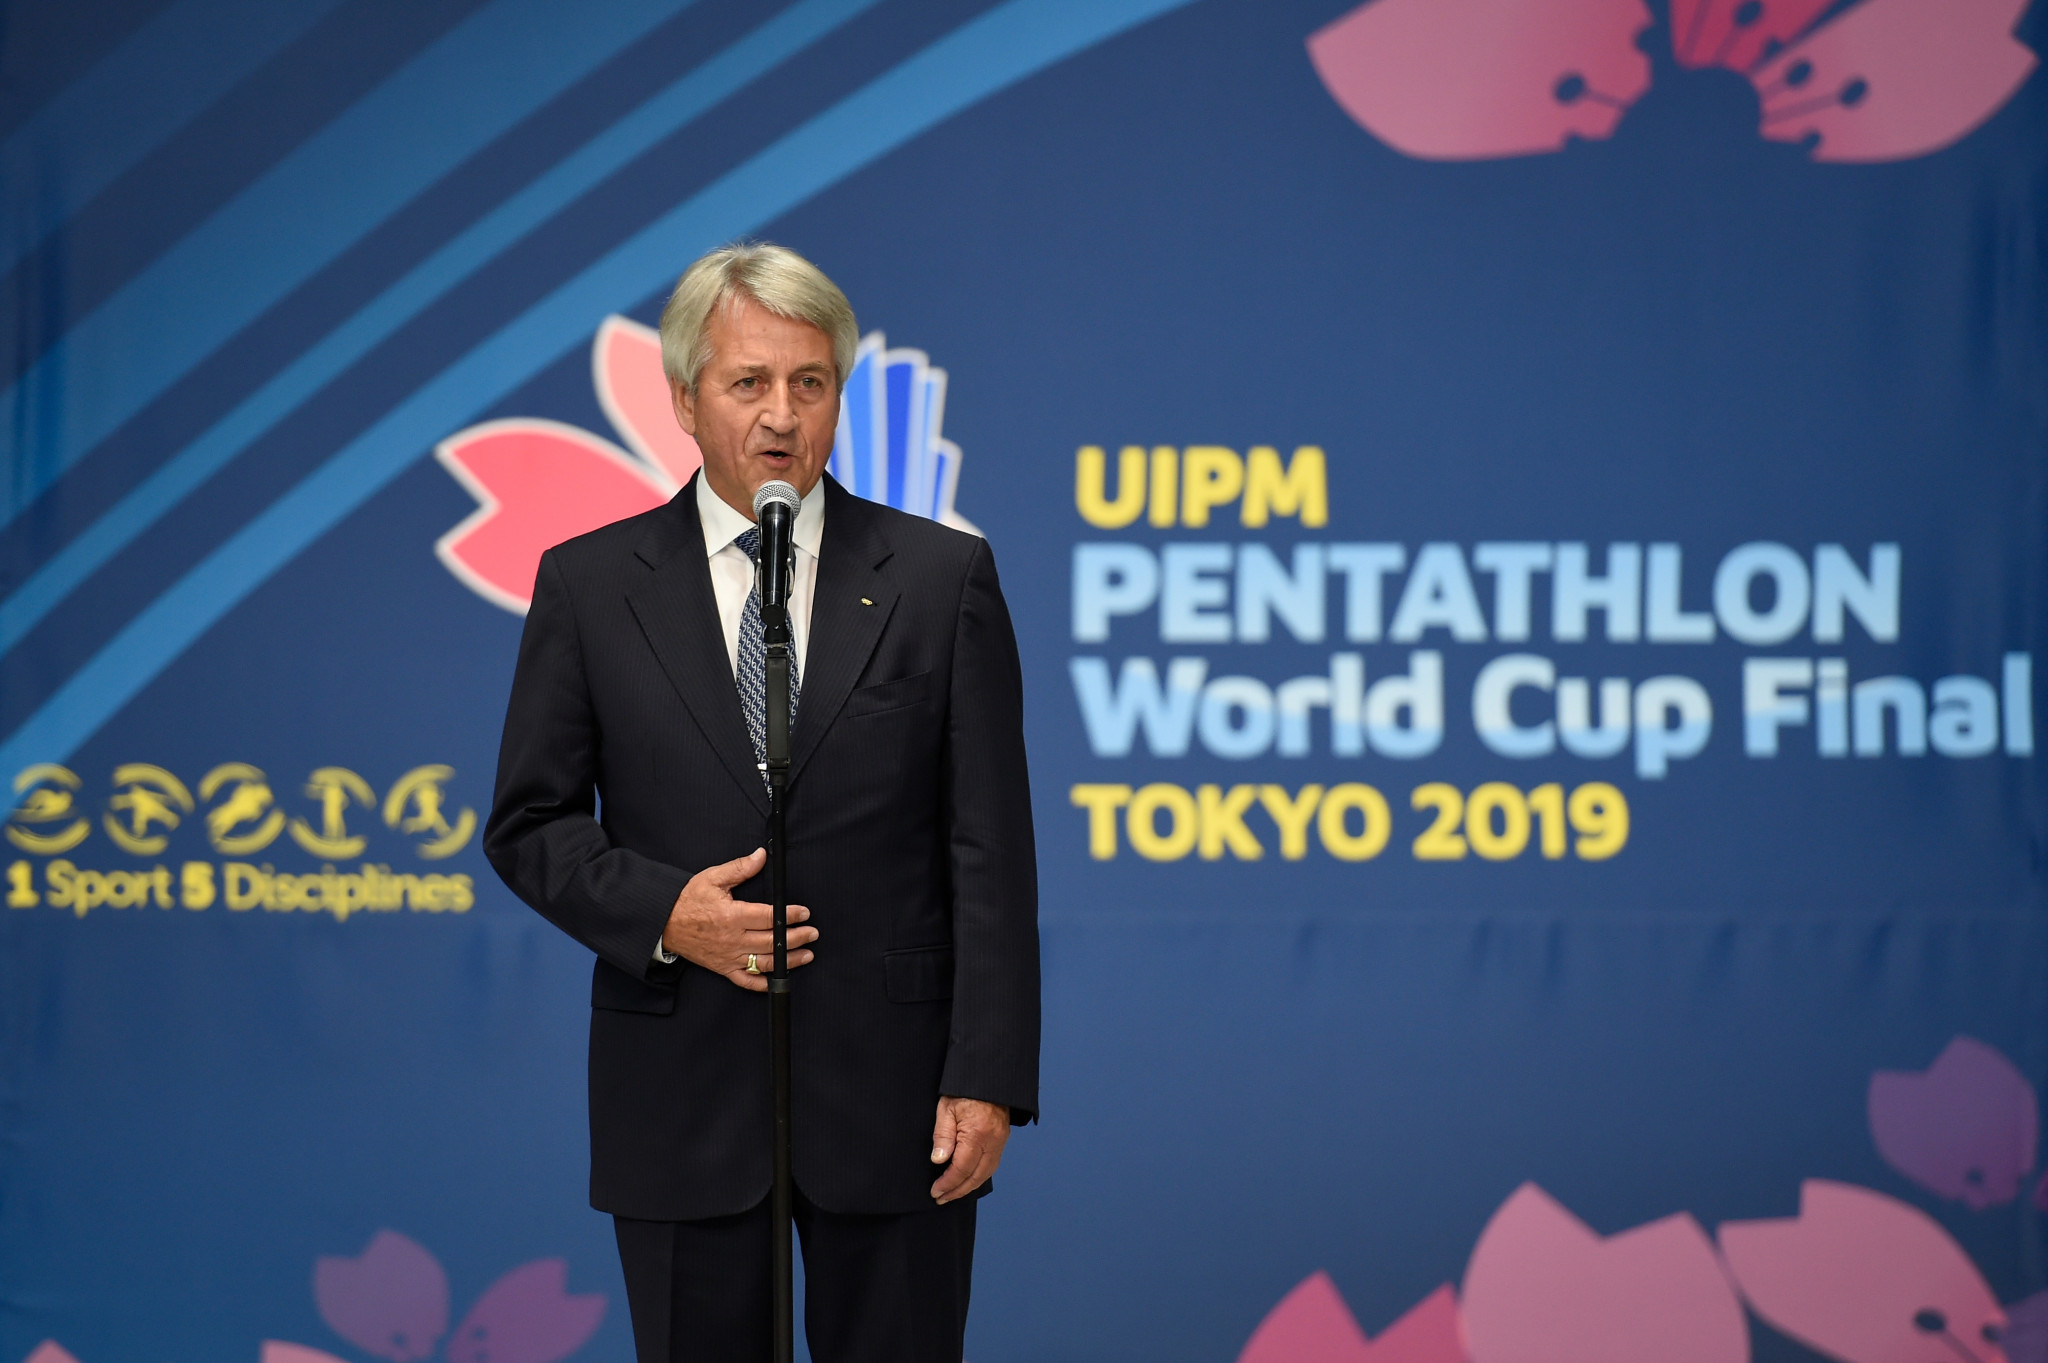 UIPM President claims 90-minute format proposed for Paris 2024 will boost popularity